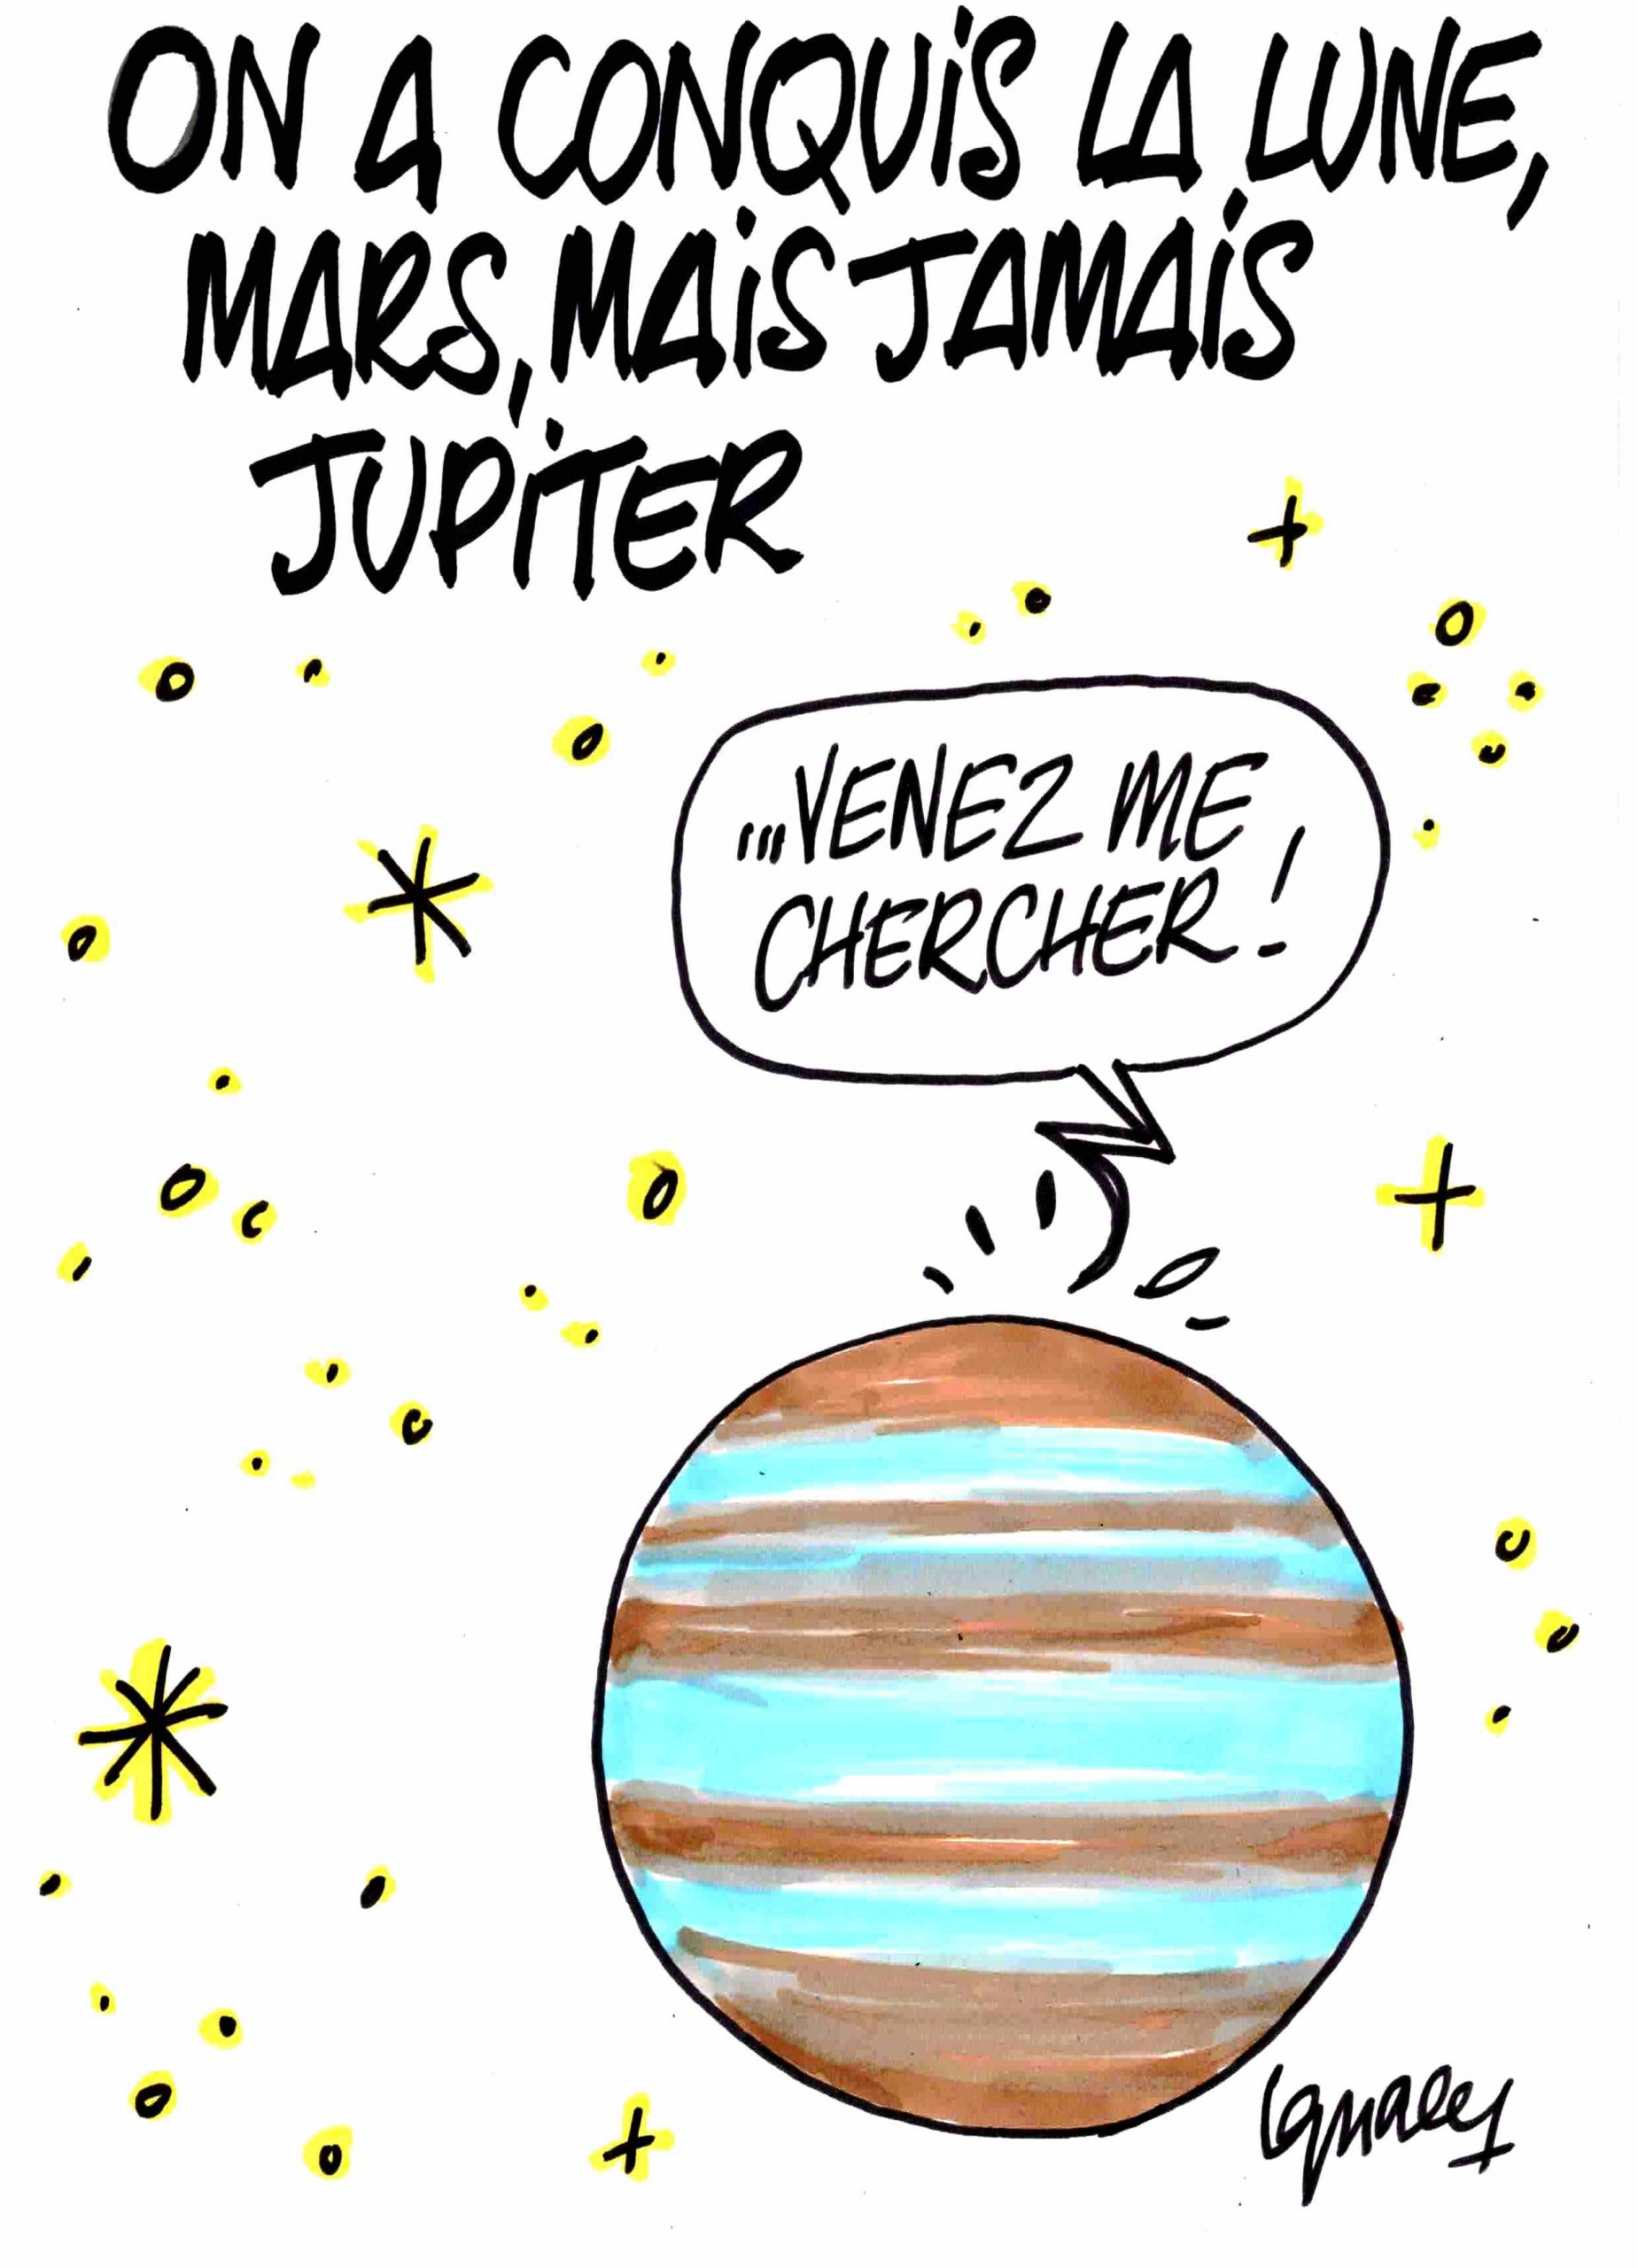 Ignace - On a conquis la lune, Mars, mais jamais Jupiter